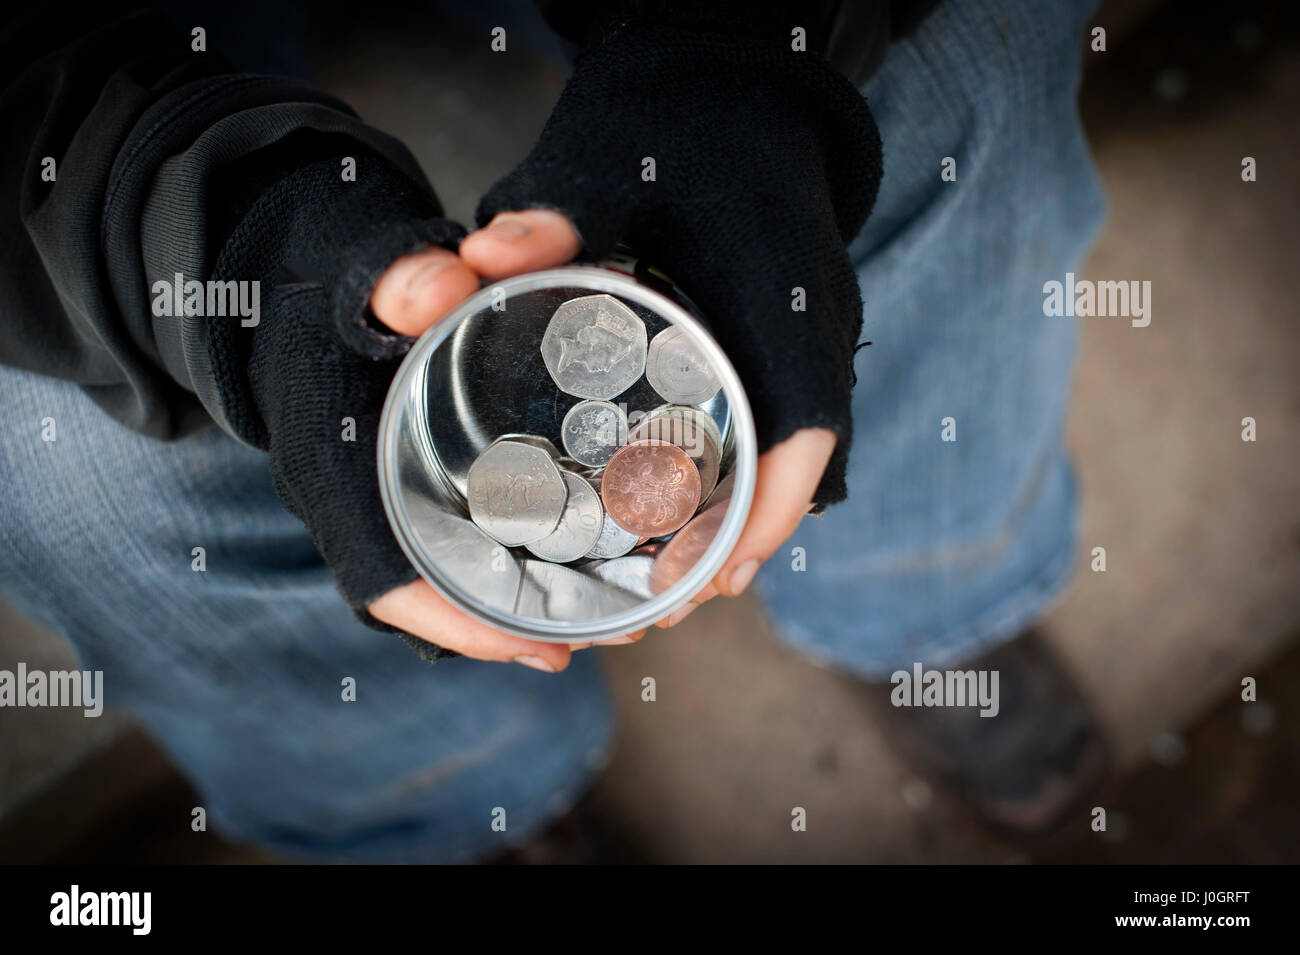 Begging on the streets. - Stock Image